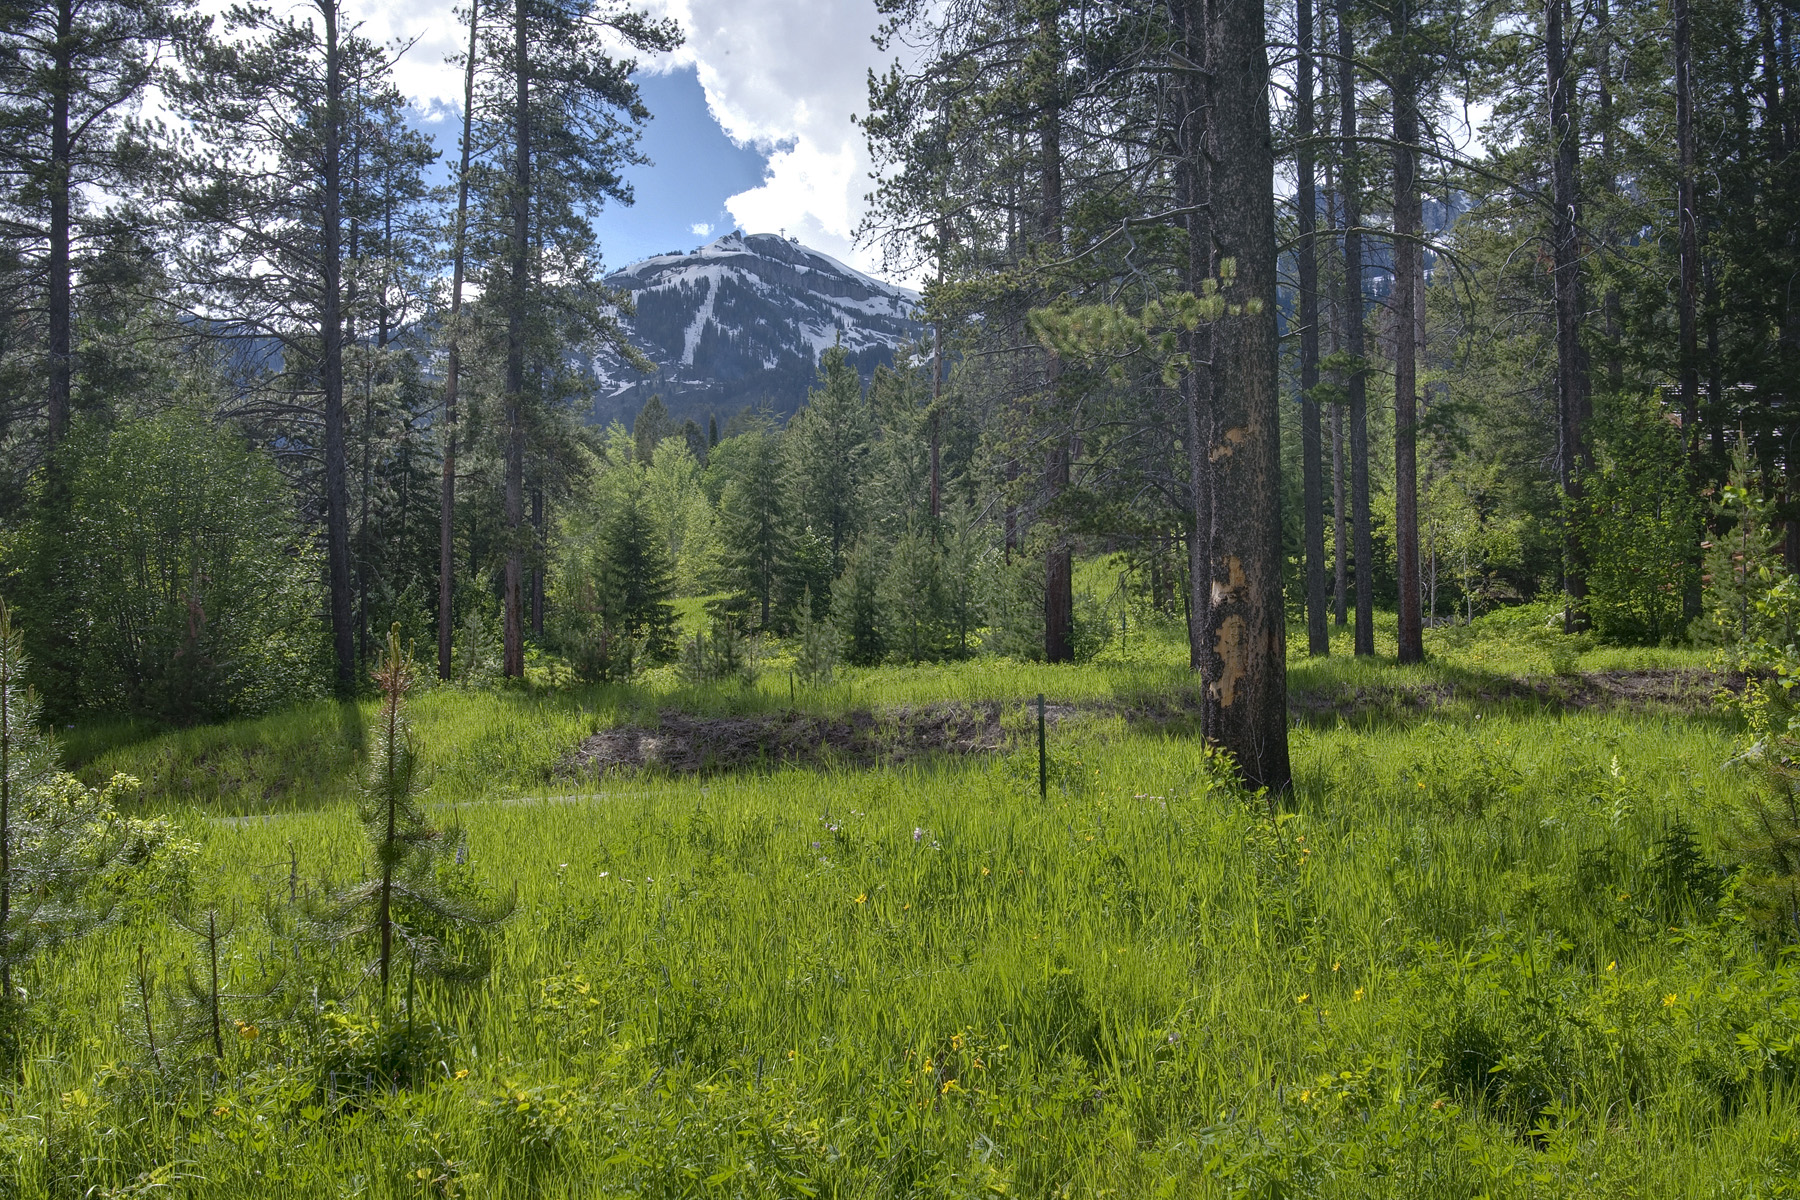 Земля для того Продажа на Granite Ridge Homesite 7730 N Lower Granite Ridge Rd Teton Village, Вайоминг 83025 Соединенные Штаты